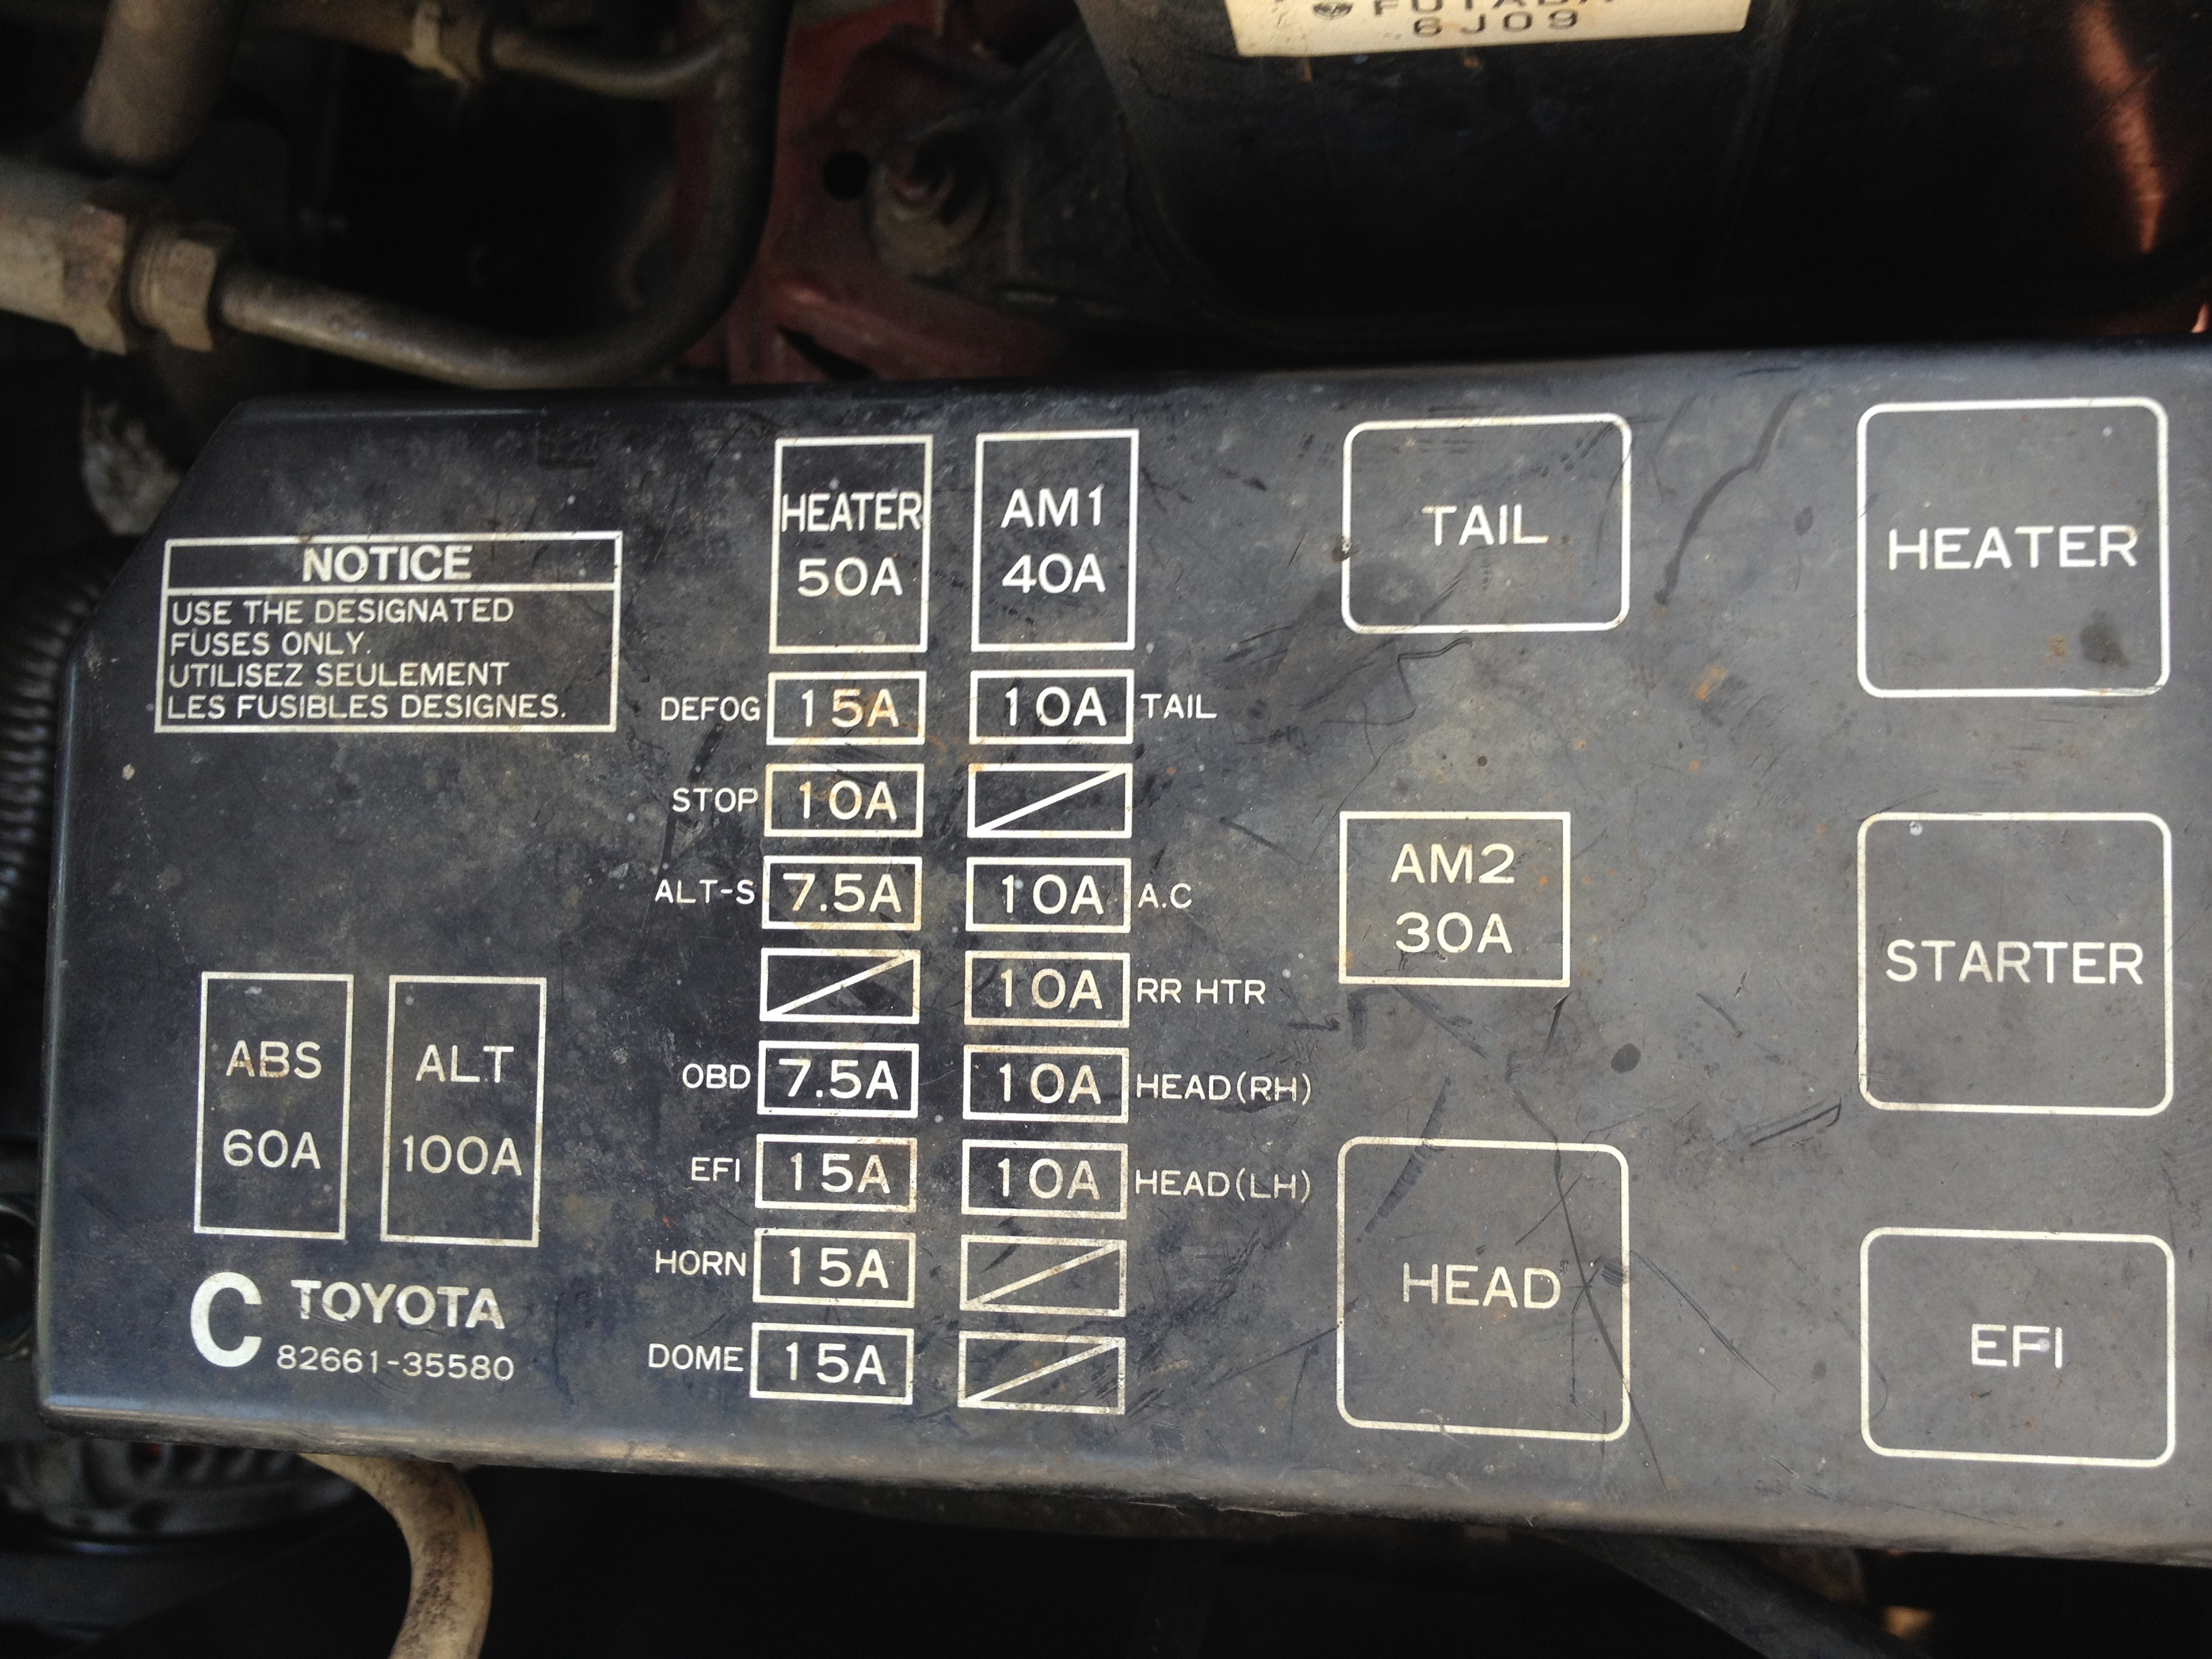 1995 Toyota Tacoma Fuse Box Trusted Wiring Diagrams 95 Infiniti J30 For 1997 Camry Diagram